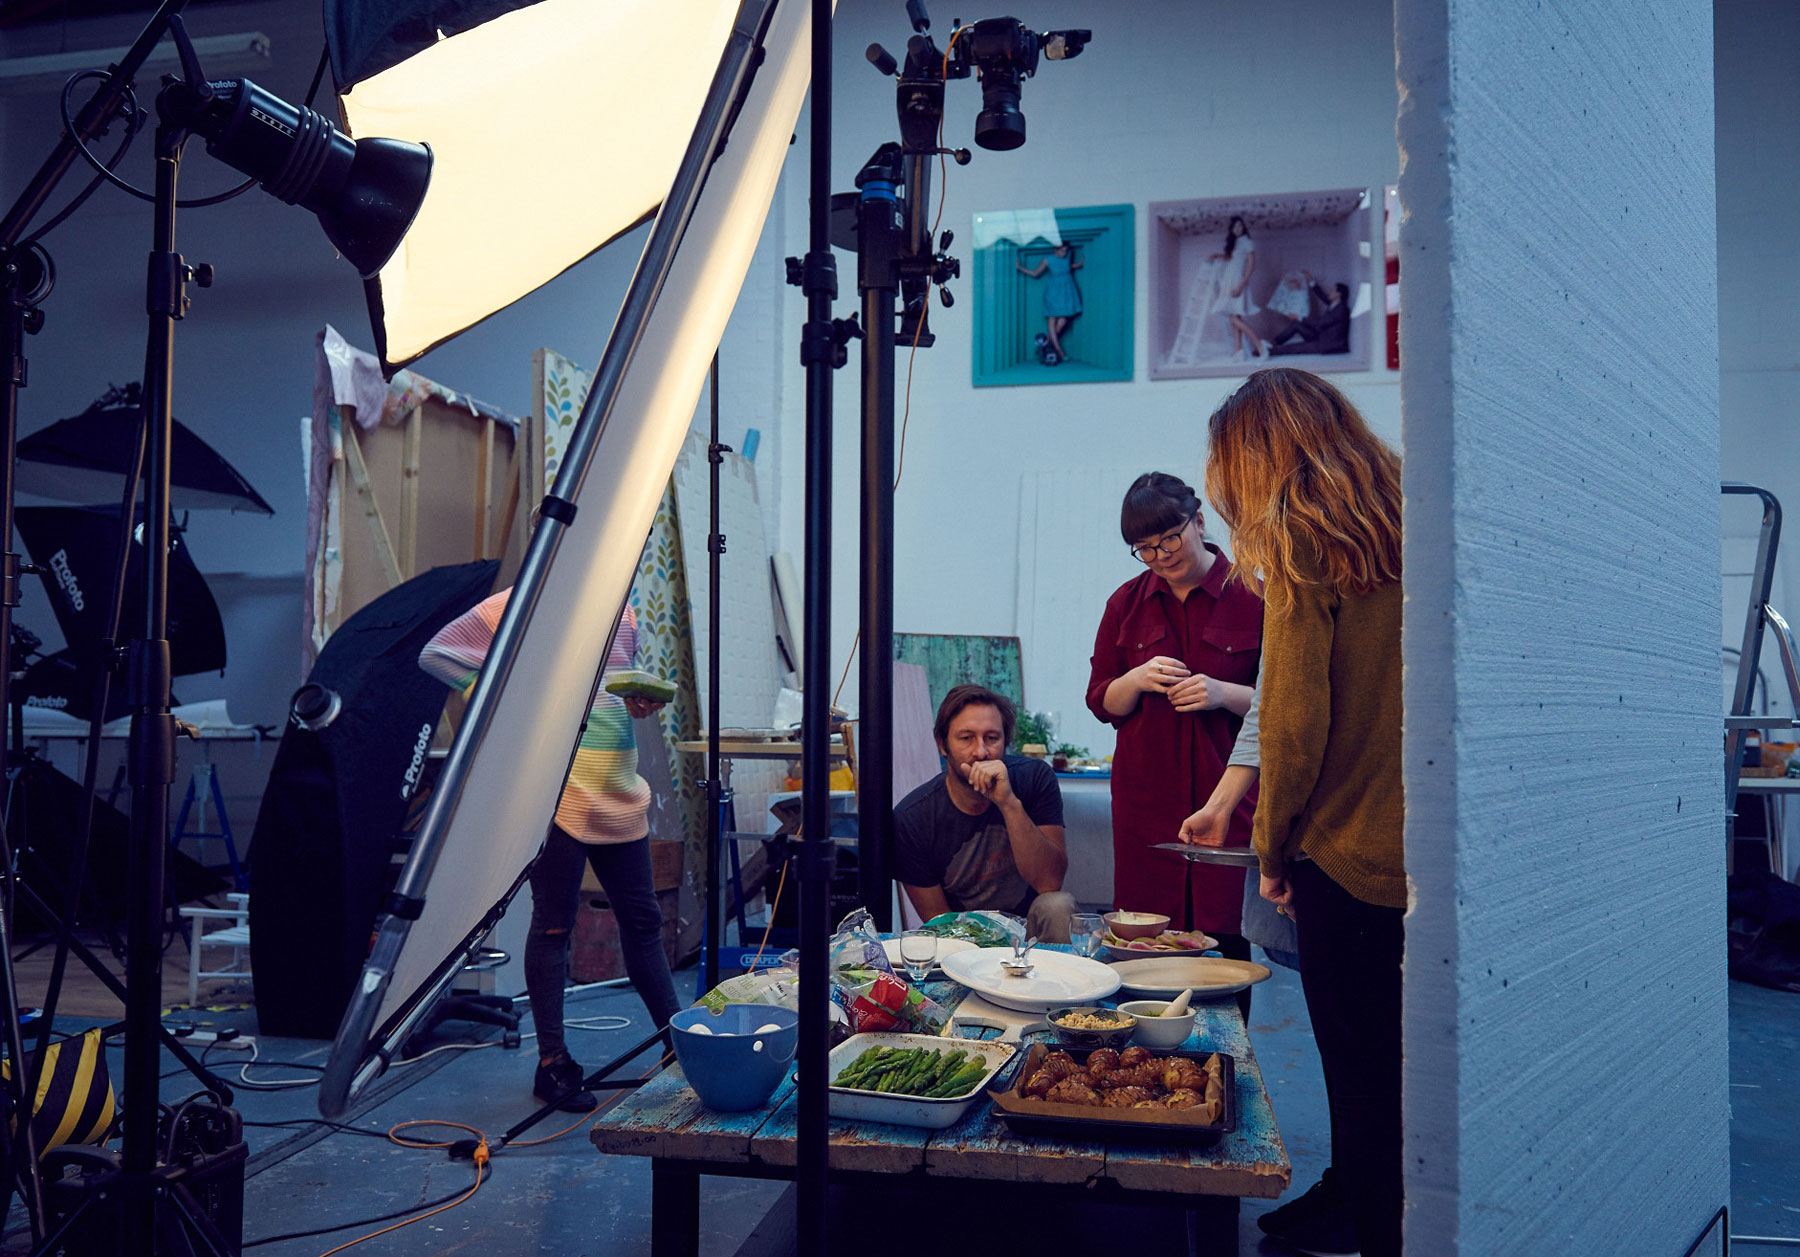 Behind the scenes on our food magazine cover shoot